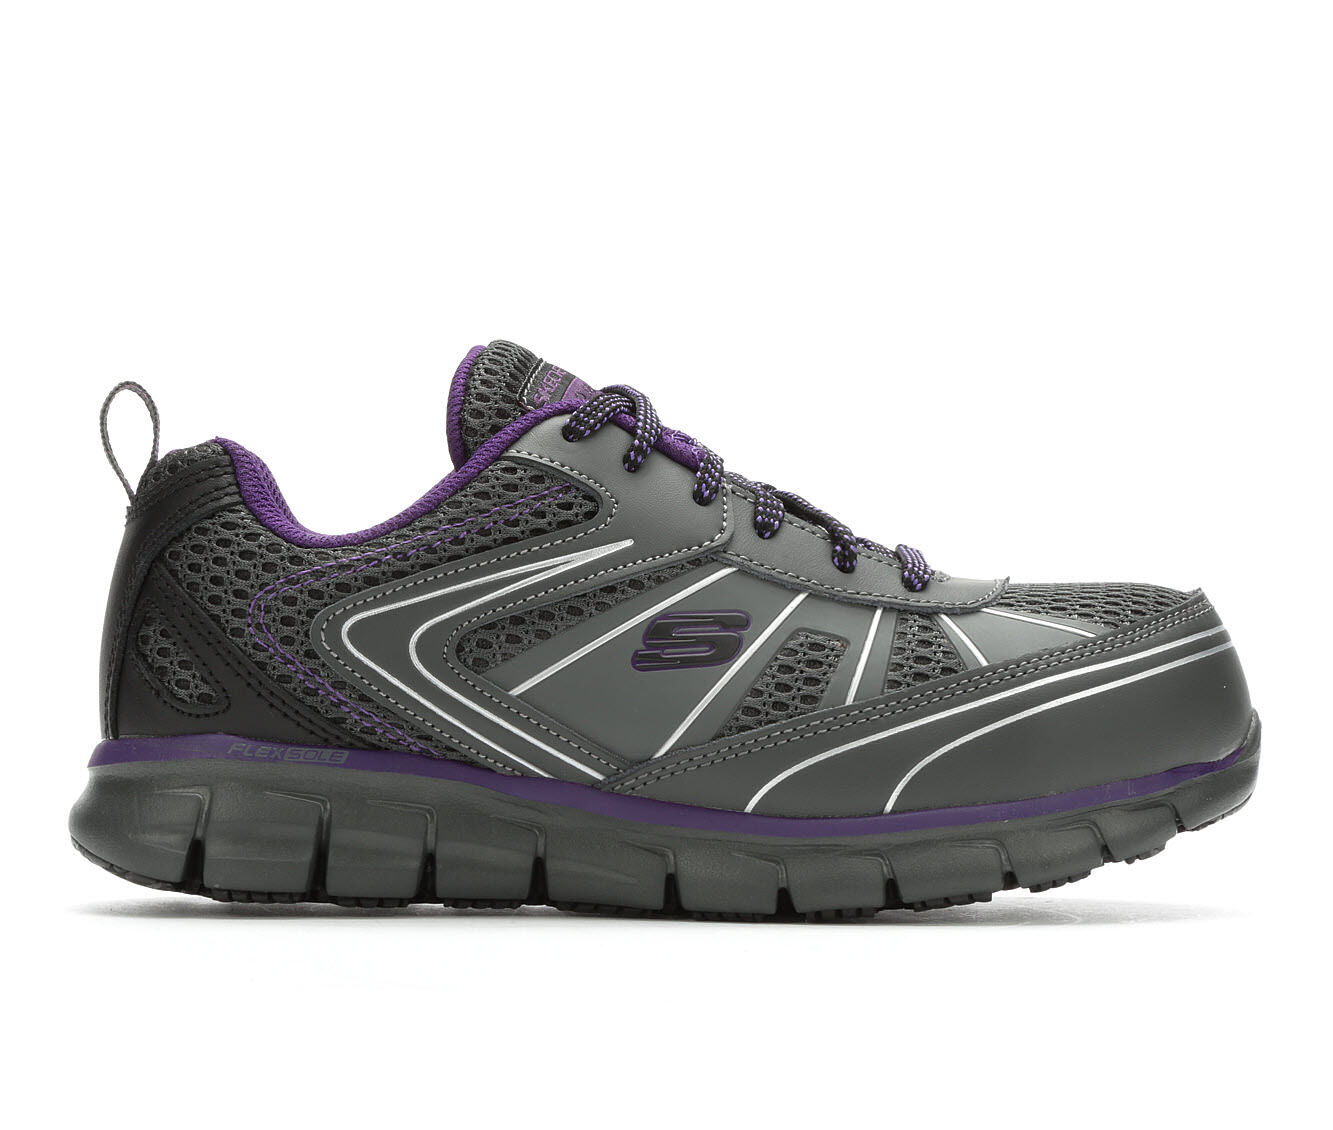 Women's Skechers Work Algonac 77207 Alloy Toe Aluminum Toe Work Shoes Charcoal/Purple